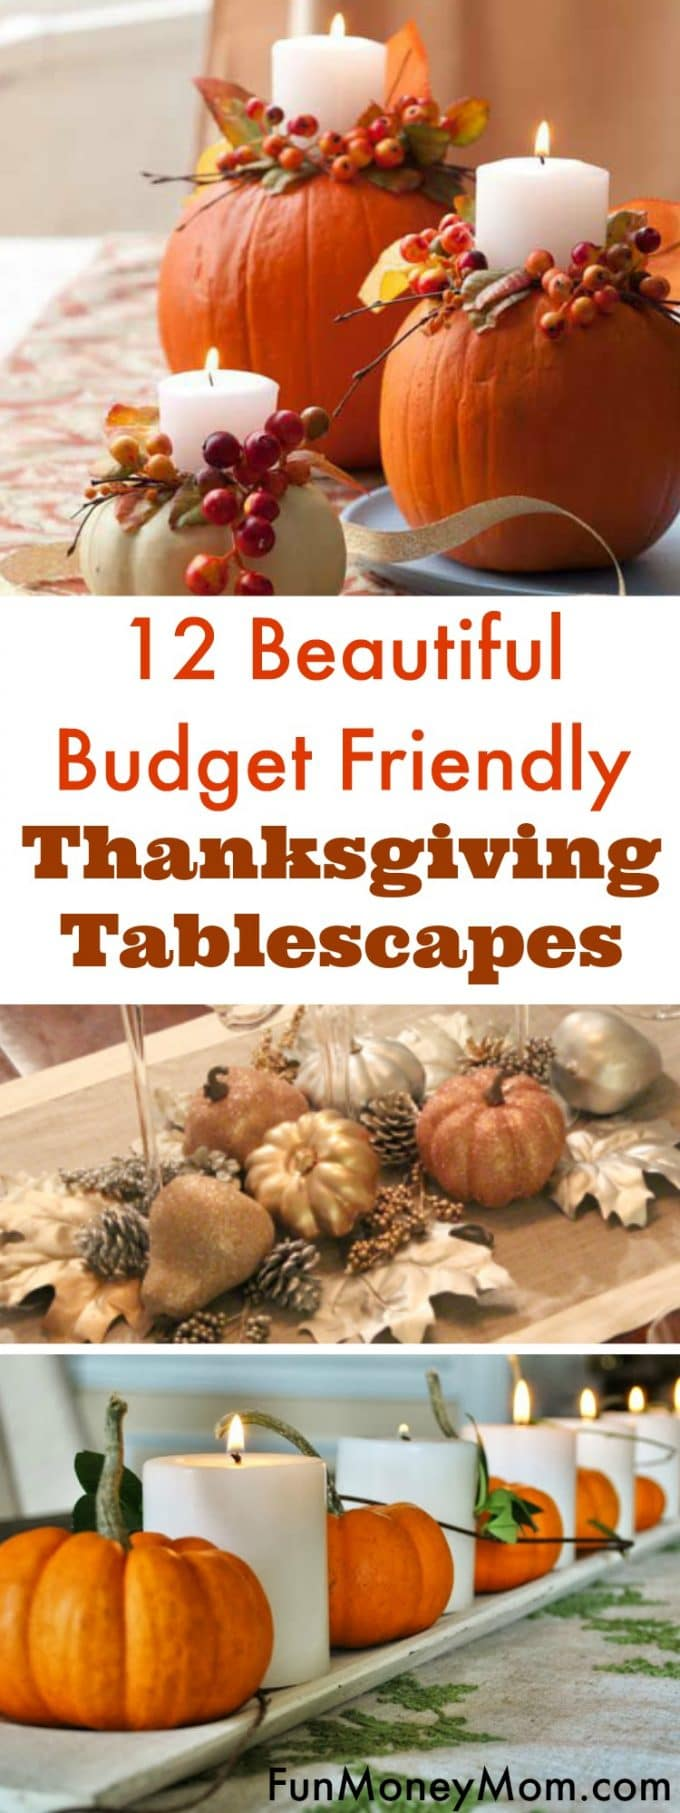 Looking for a beautiful yet budget friendly Thanksgiving Tablecape? These beautiful table settings are perfect for your holiday table